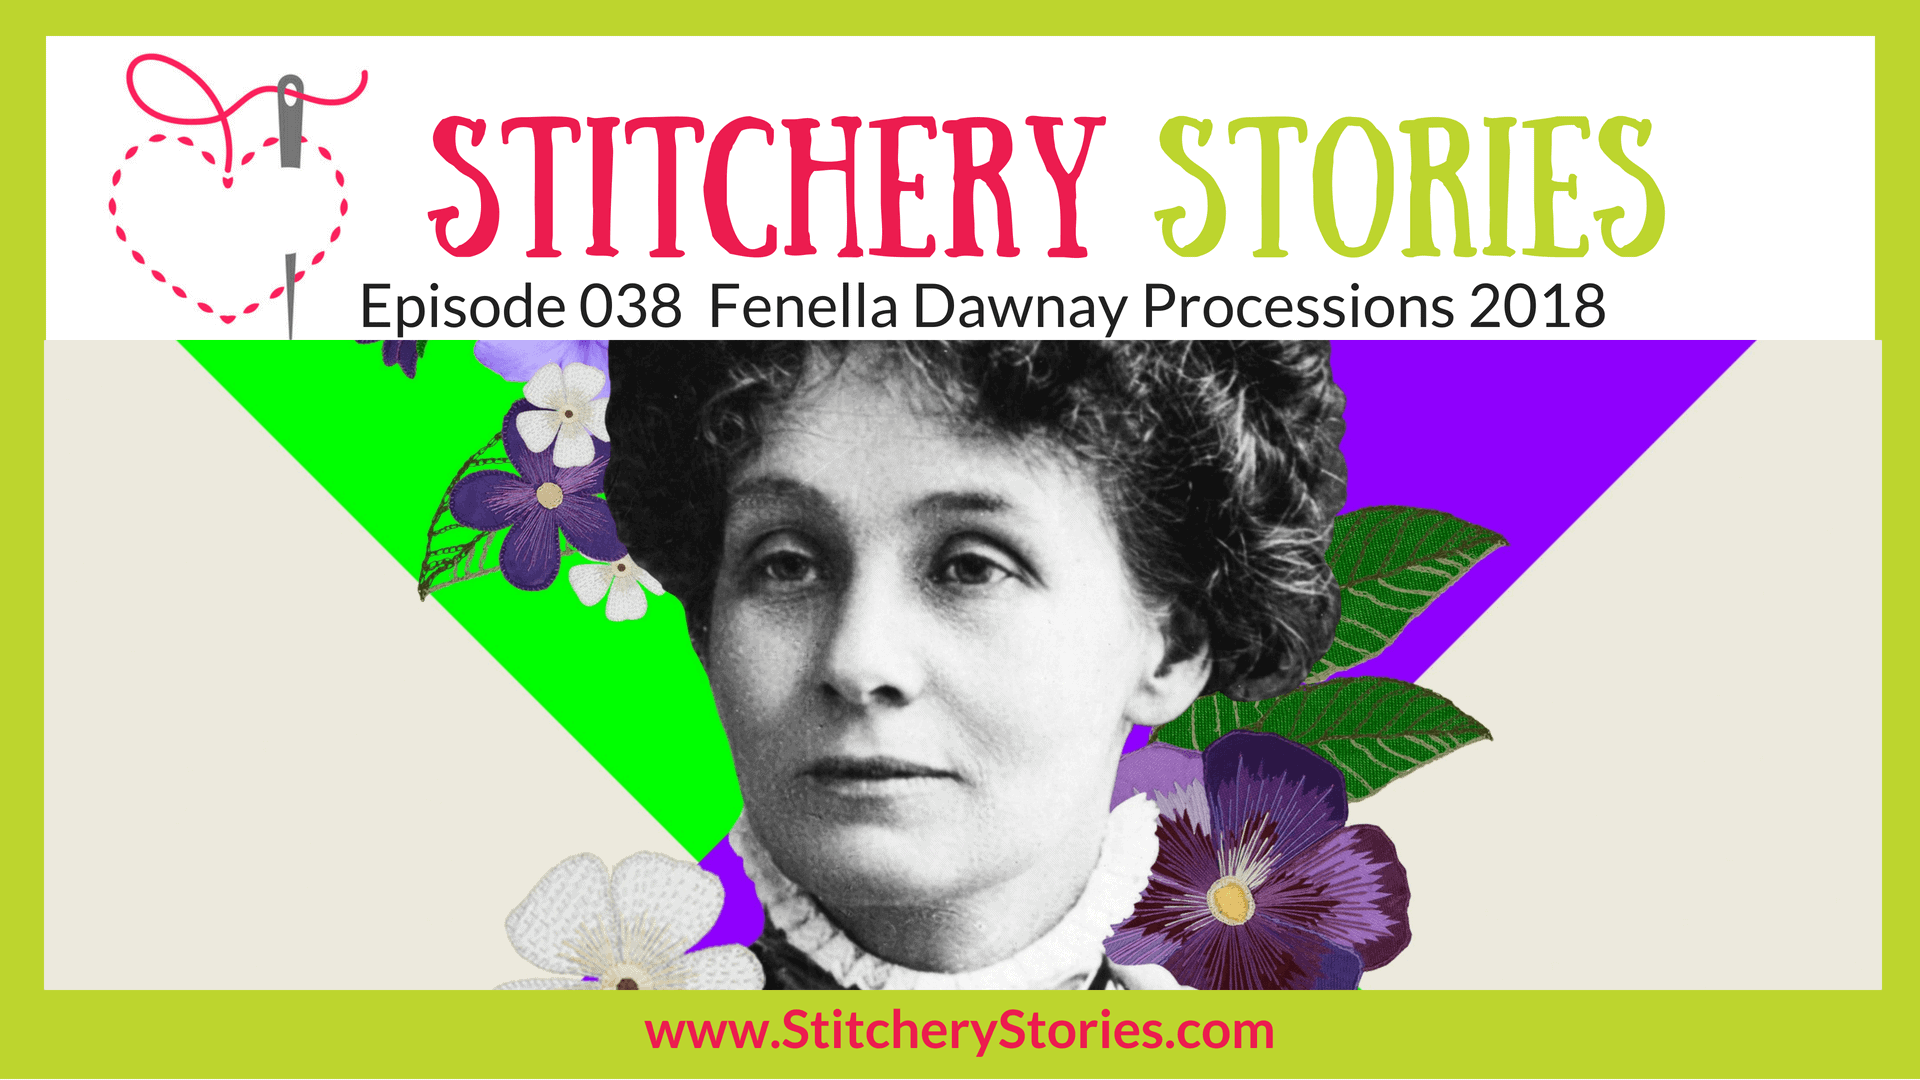 Fenella Dawnay Processions 2018 Stitchery Stories Textile Art Podcast Wide Art